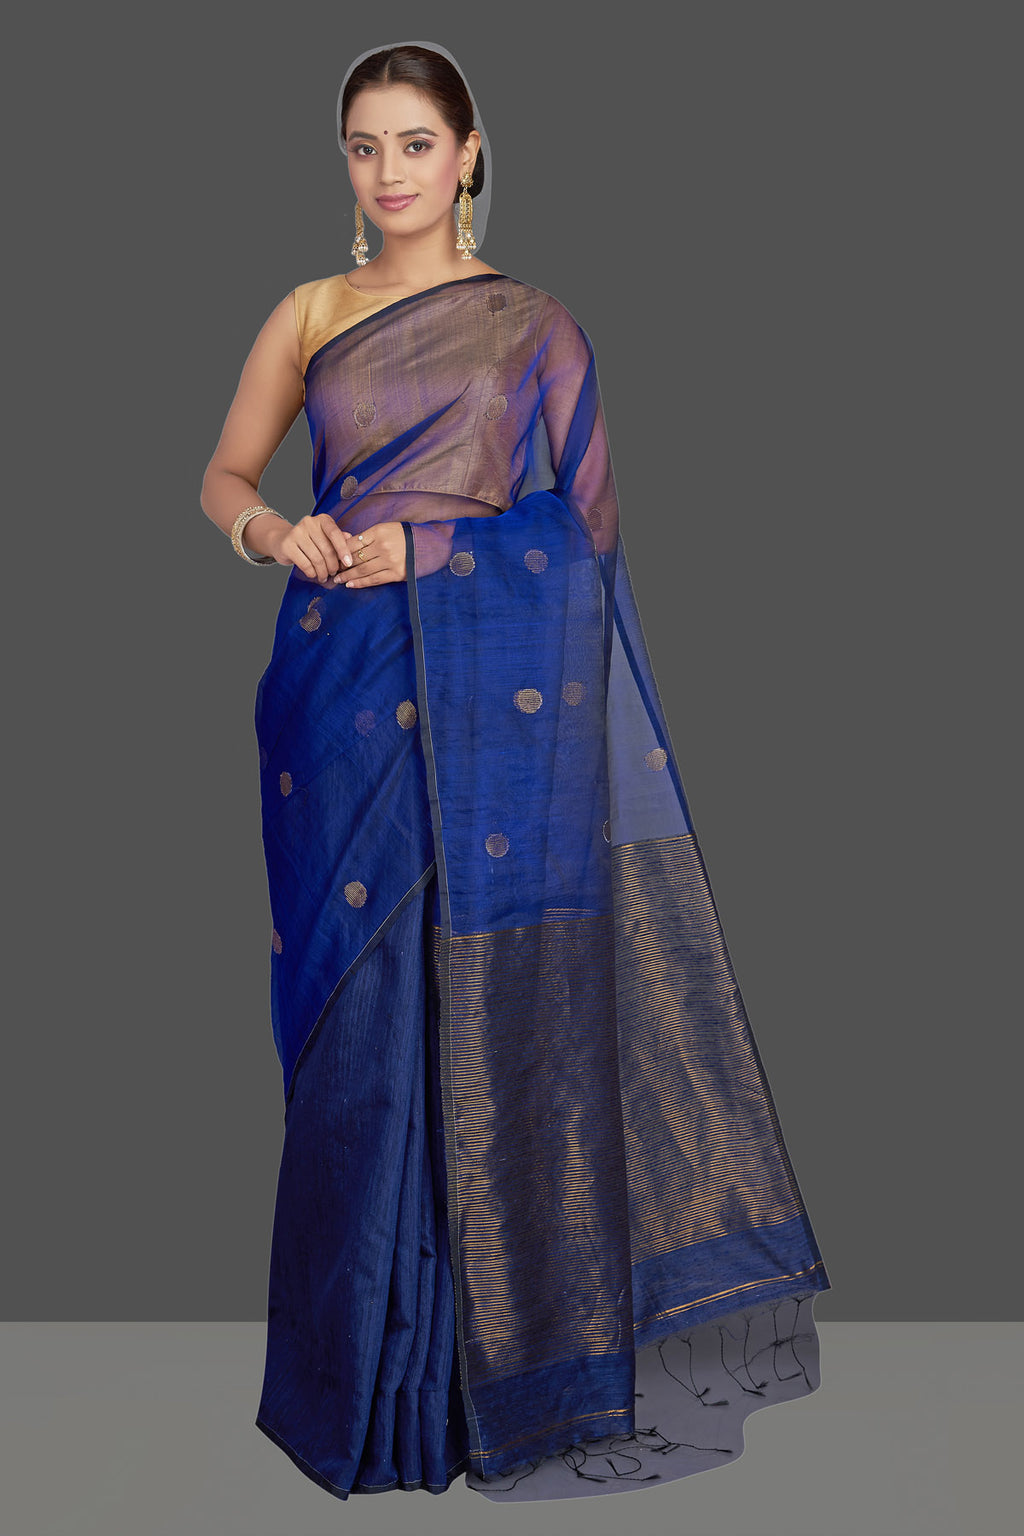 Shop gorgeous dark blue matka muslin saree online in USA with bali buti. Look gorgeous on special occasions with exquisite Indian sarees, handwoven sarees, Banarasi sarees, pure silk sarees from Pure Elegance Indian saree store in USA.-full view